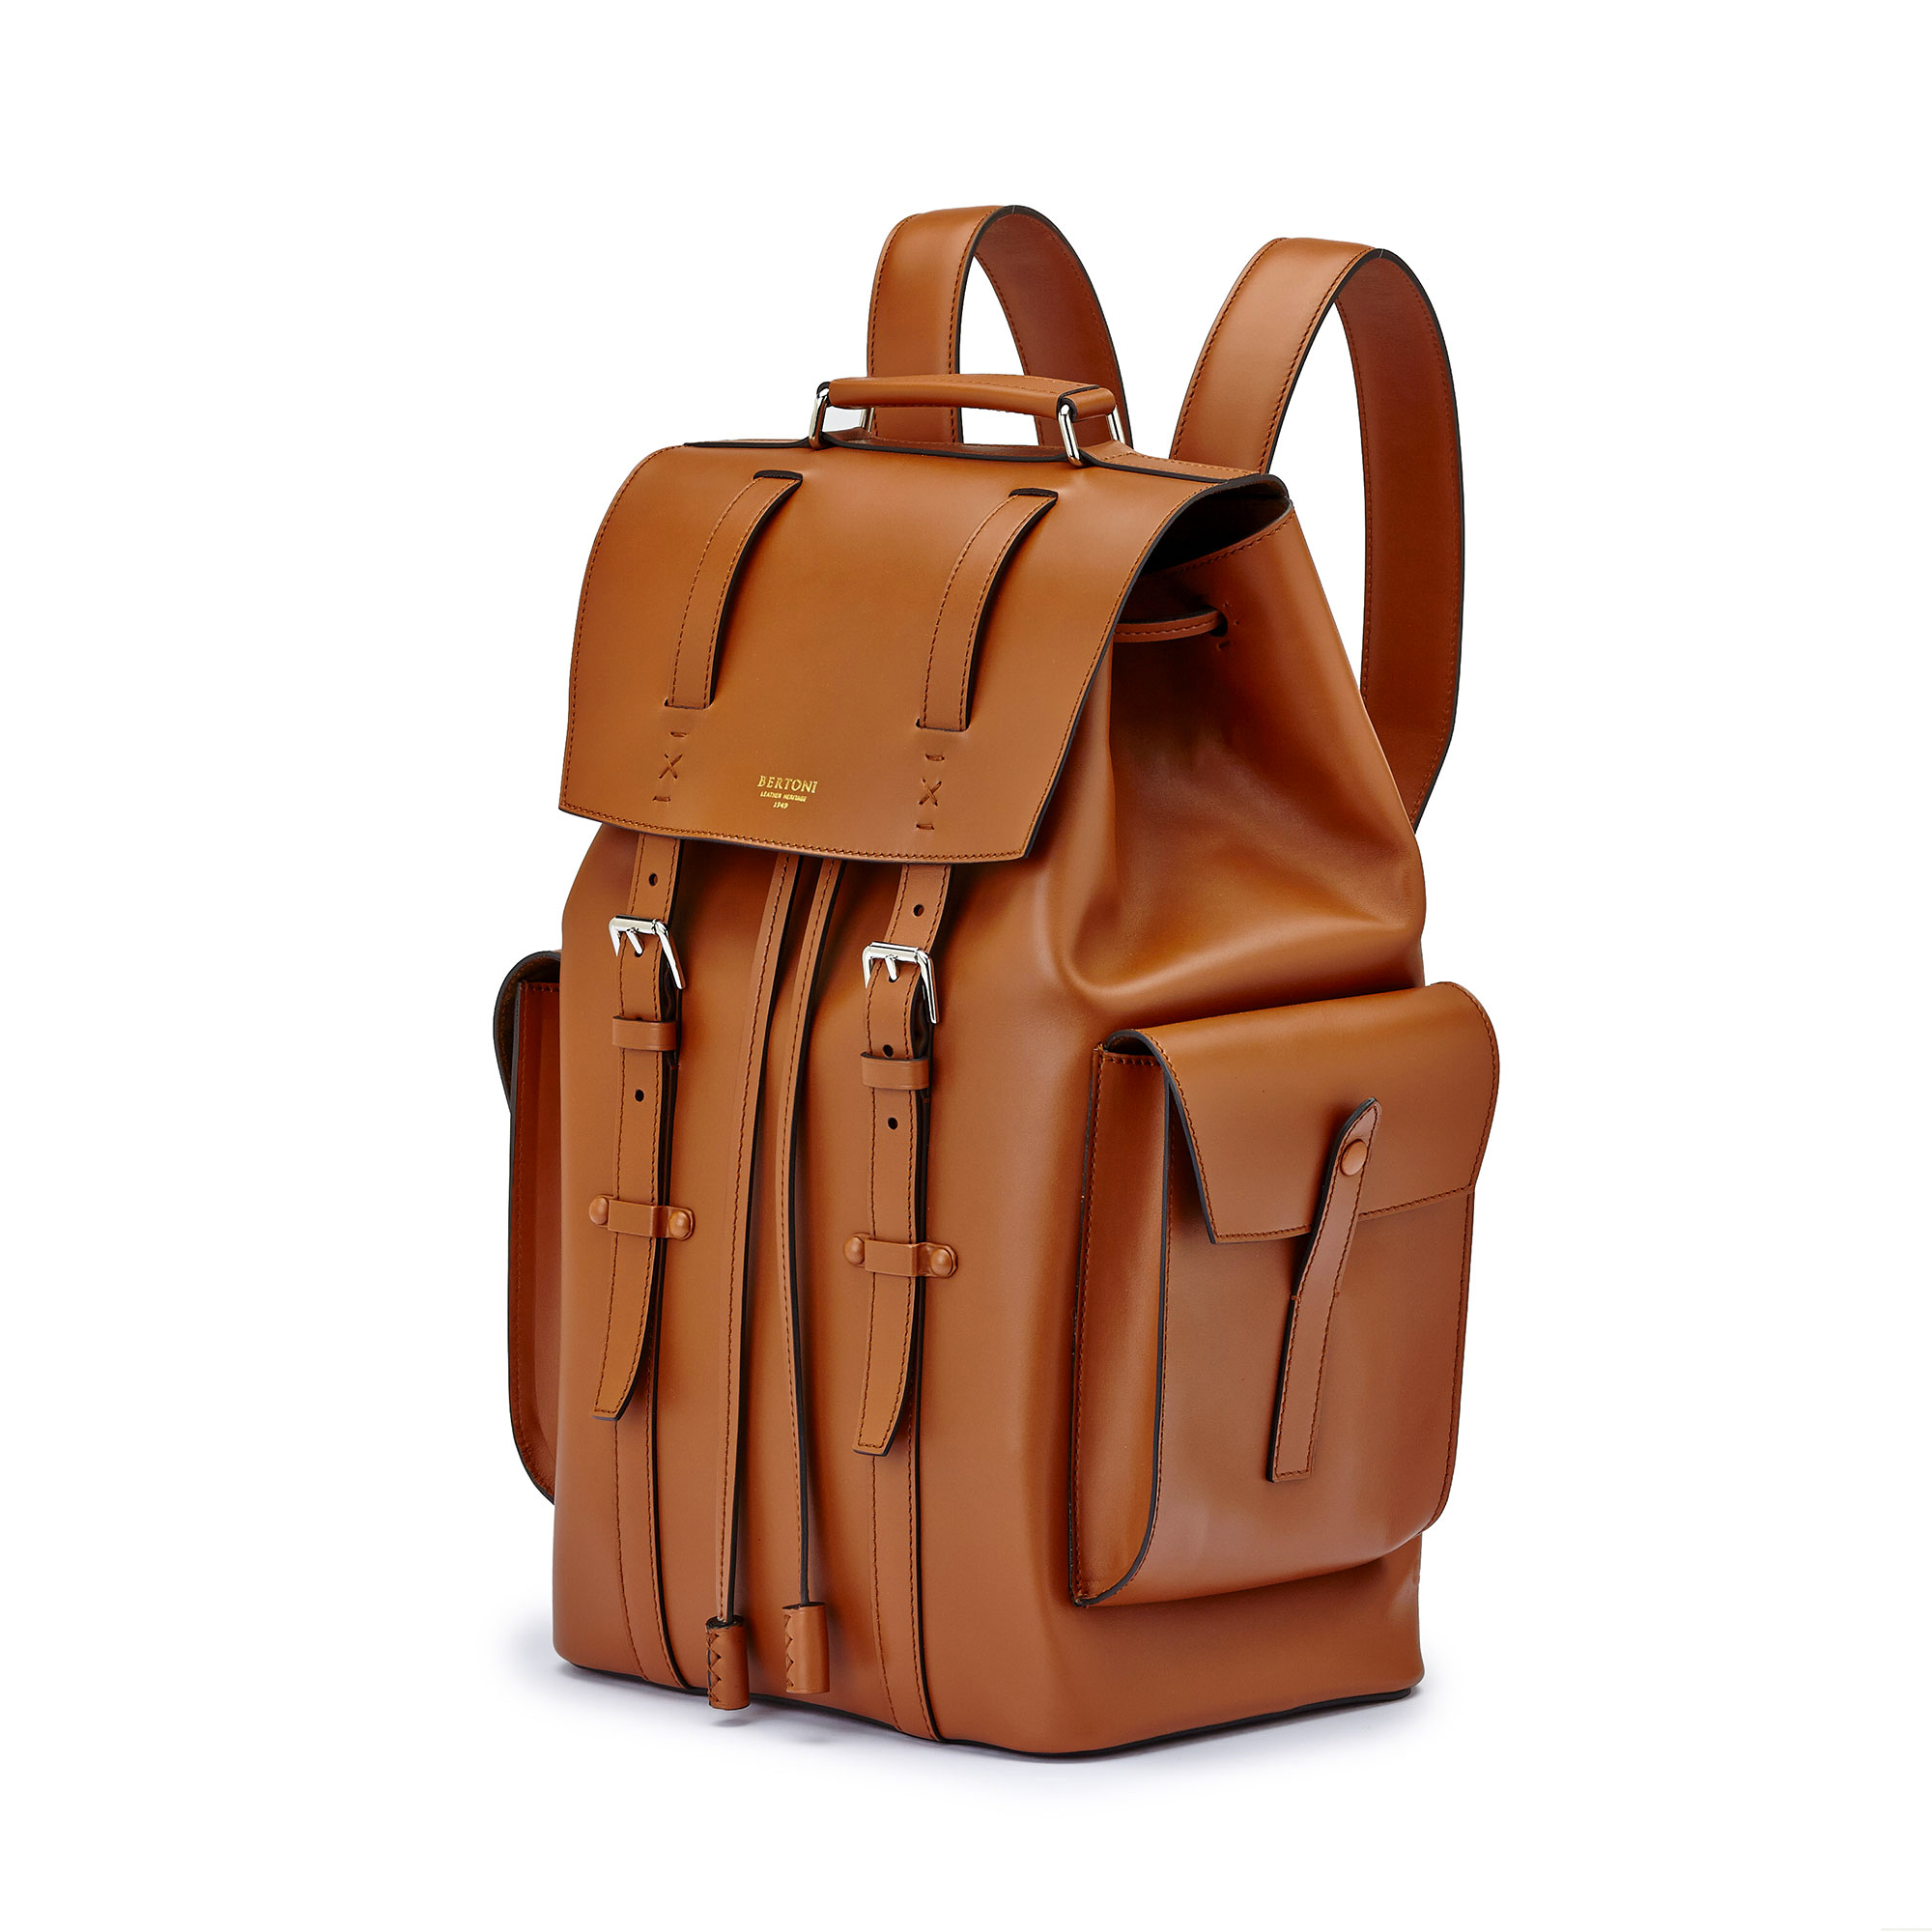 The terrabruciata french calf Traveller Backpack by Bertoni 1949 02